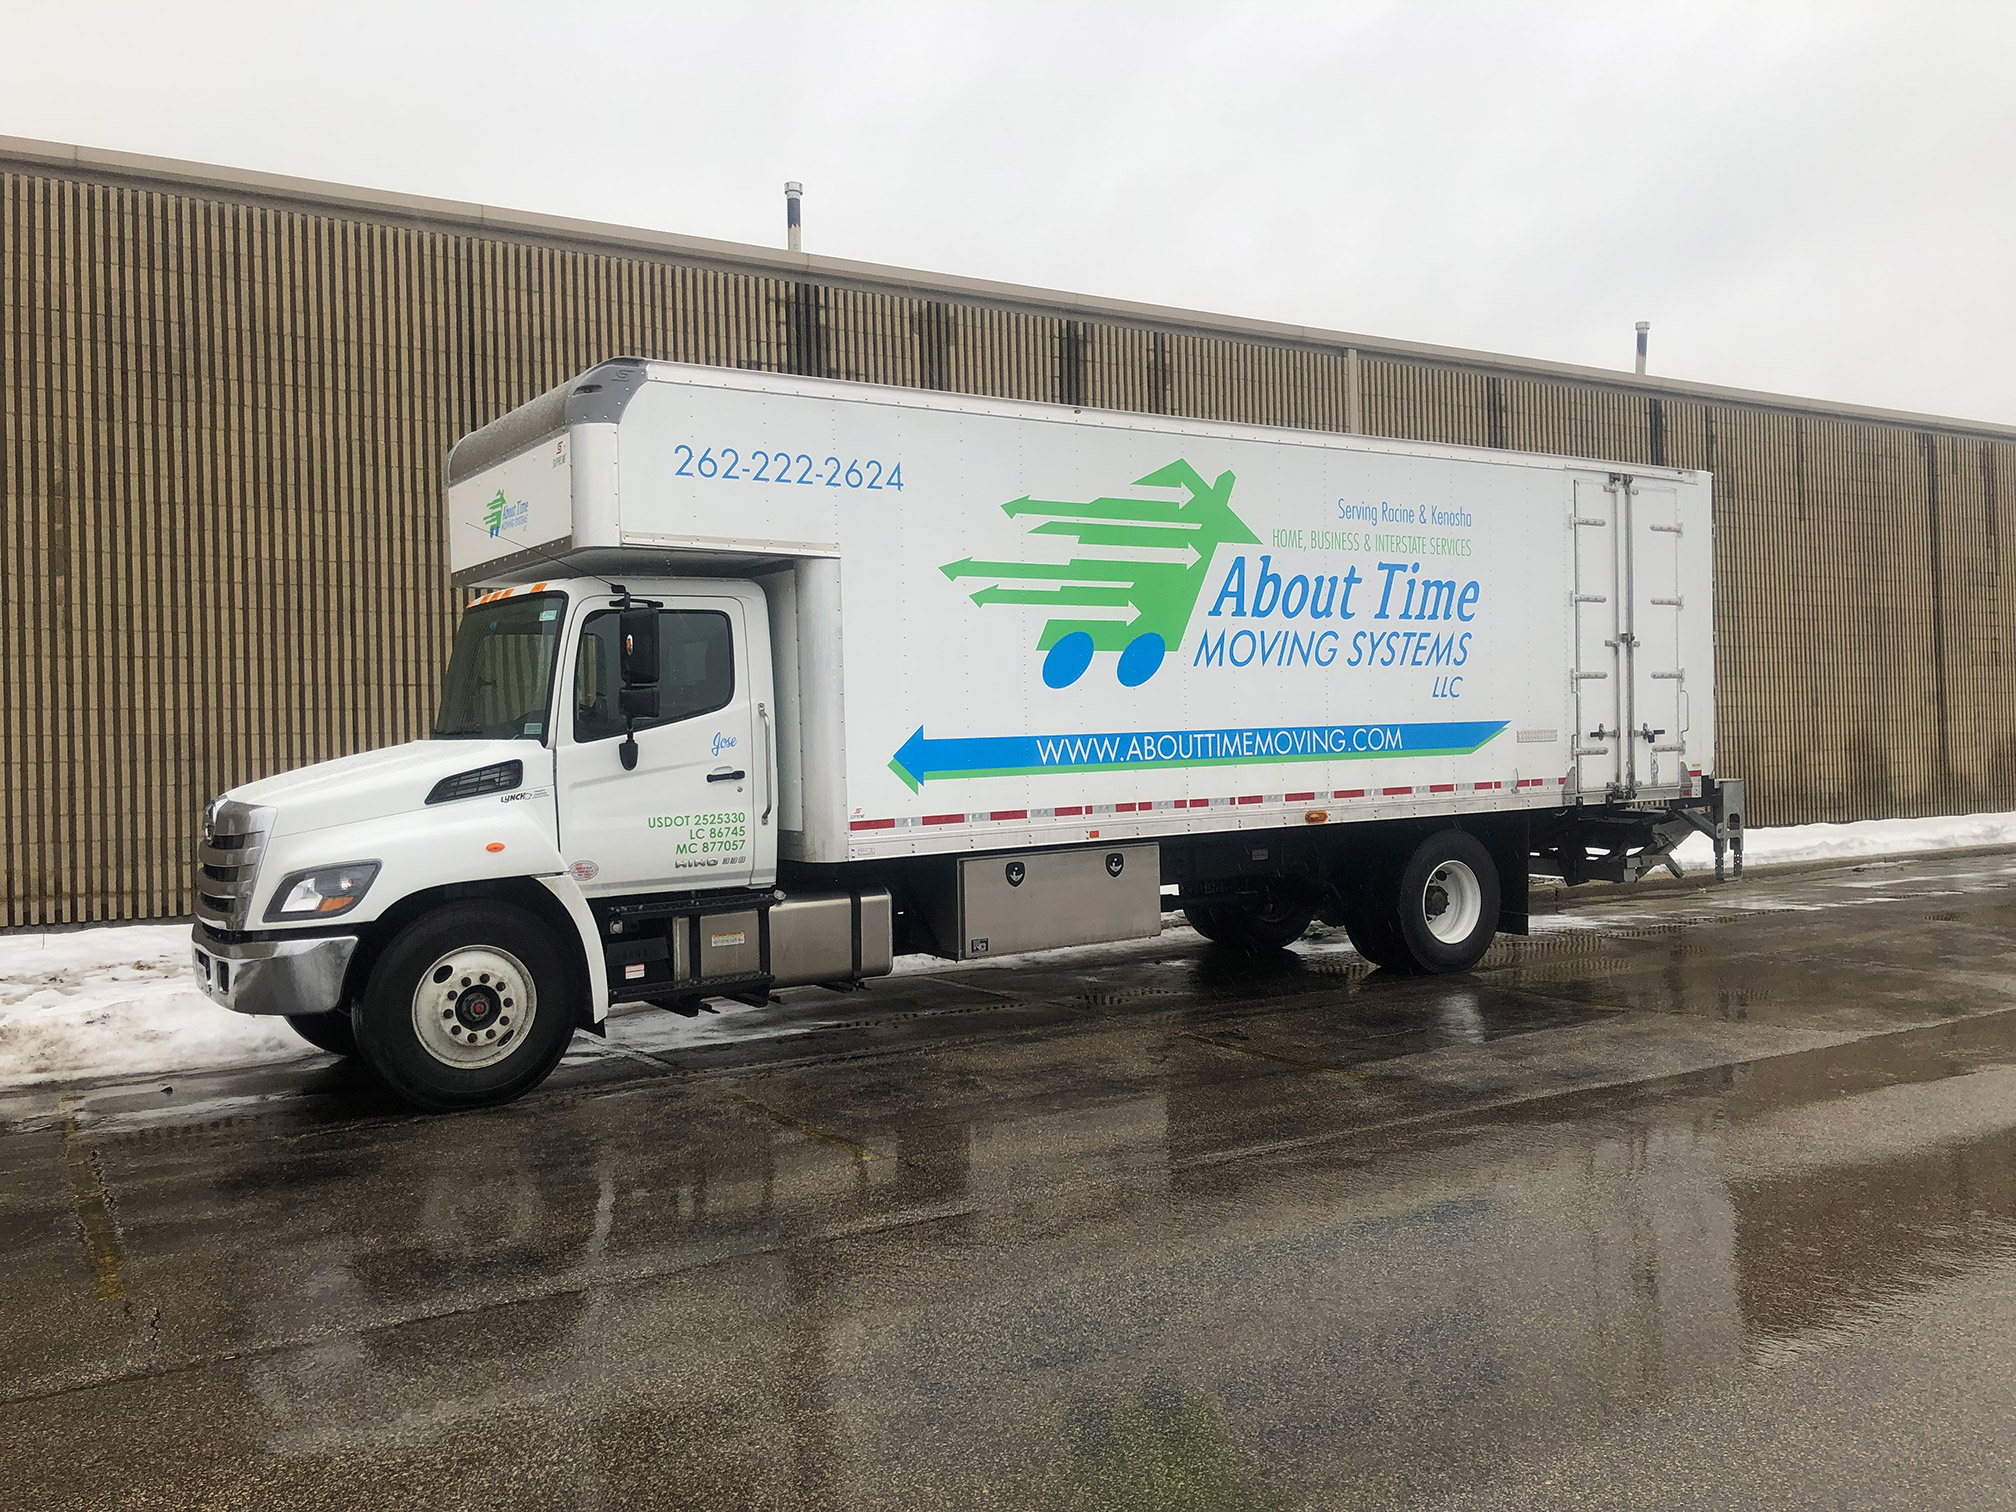 About Time Moving truck in Racine, Wisconsin